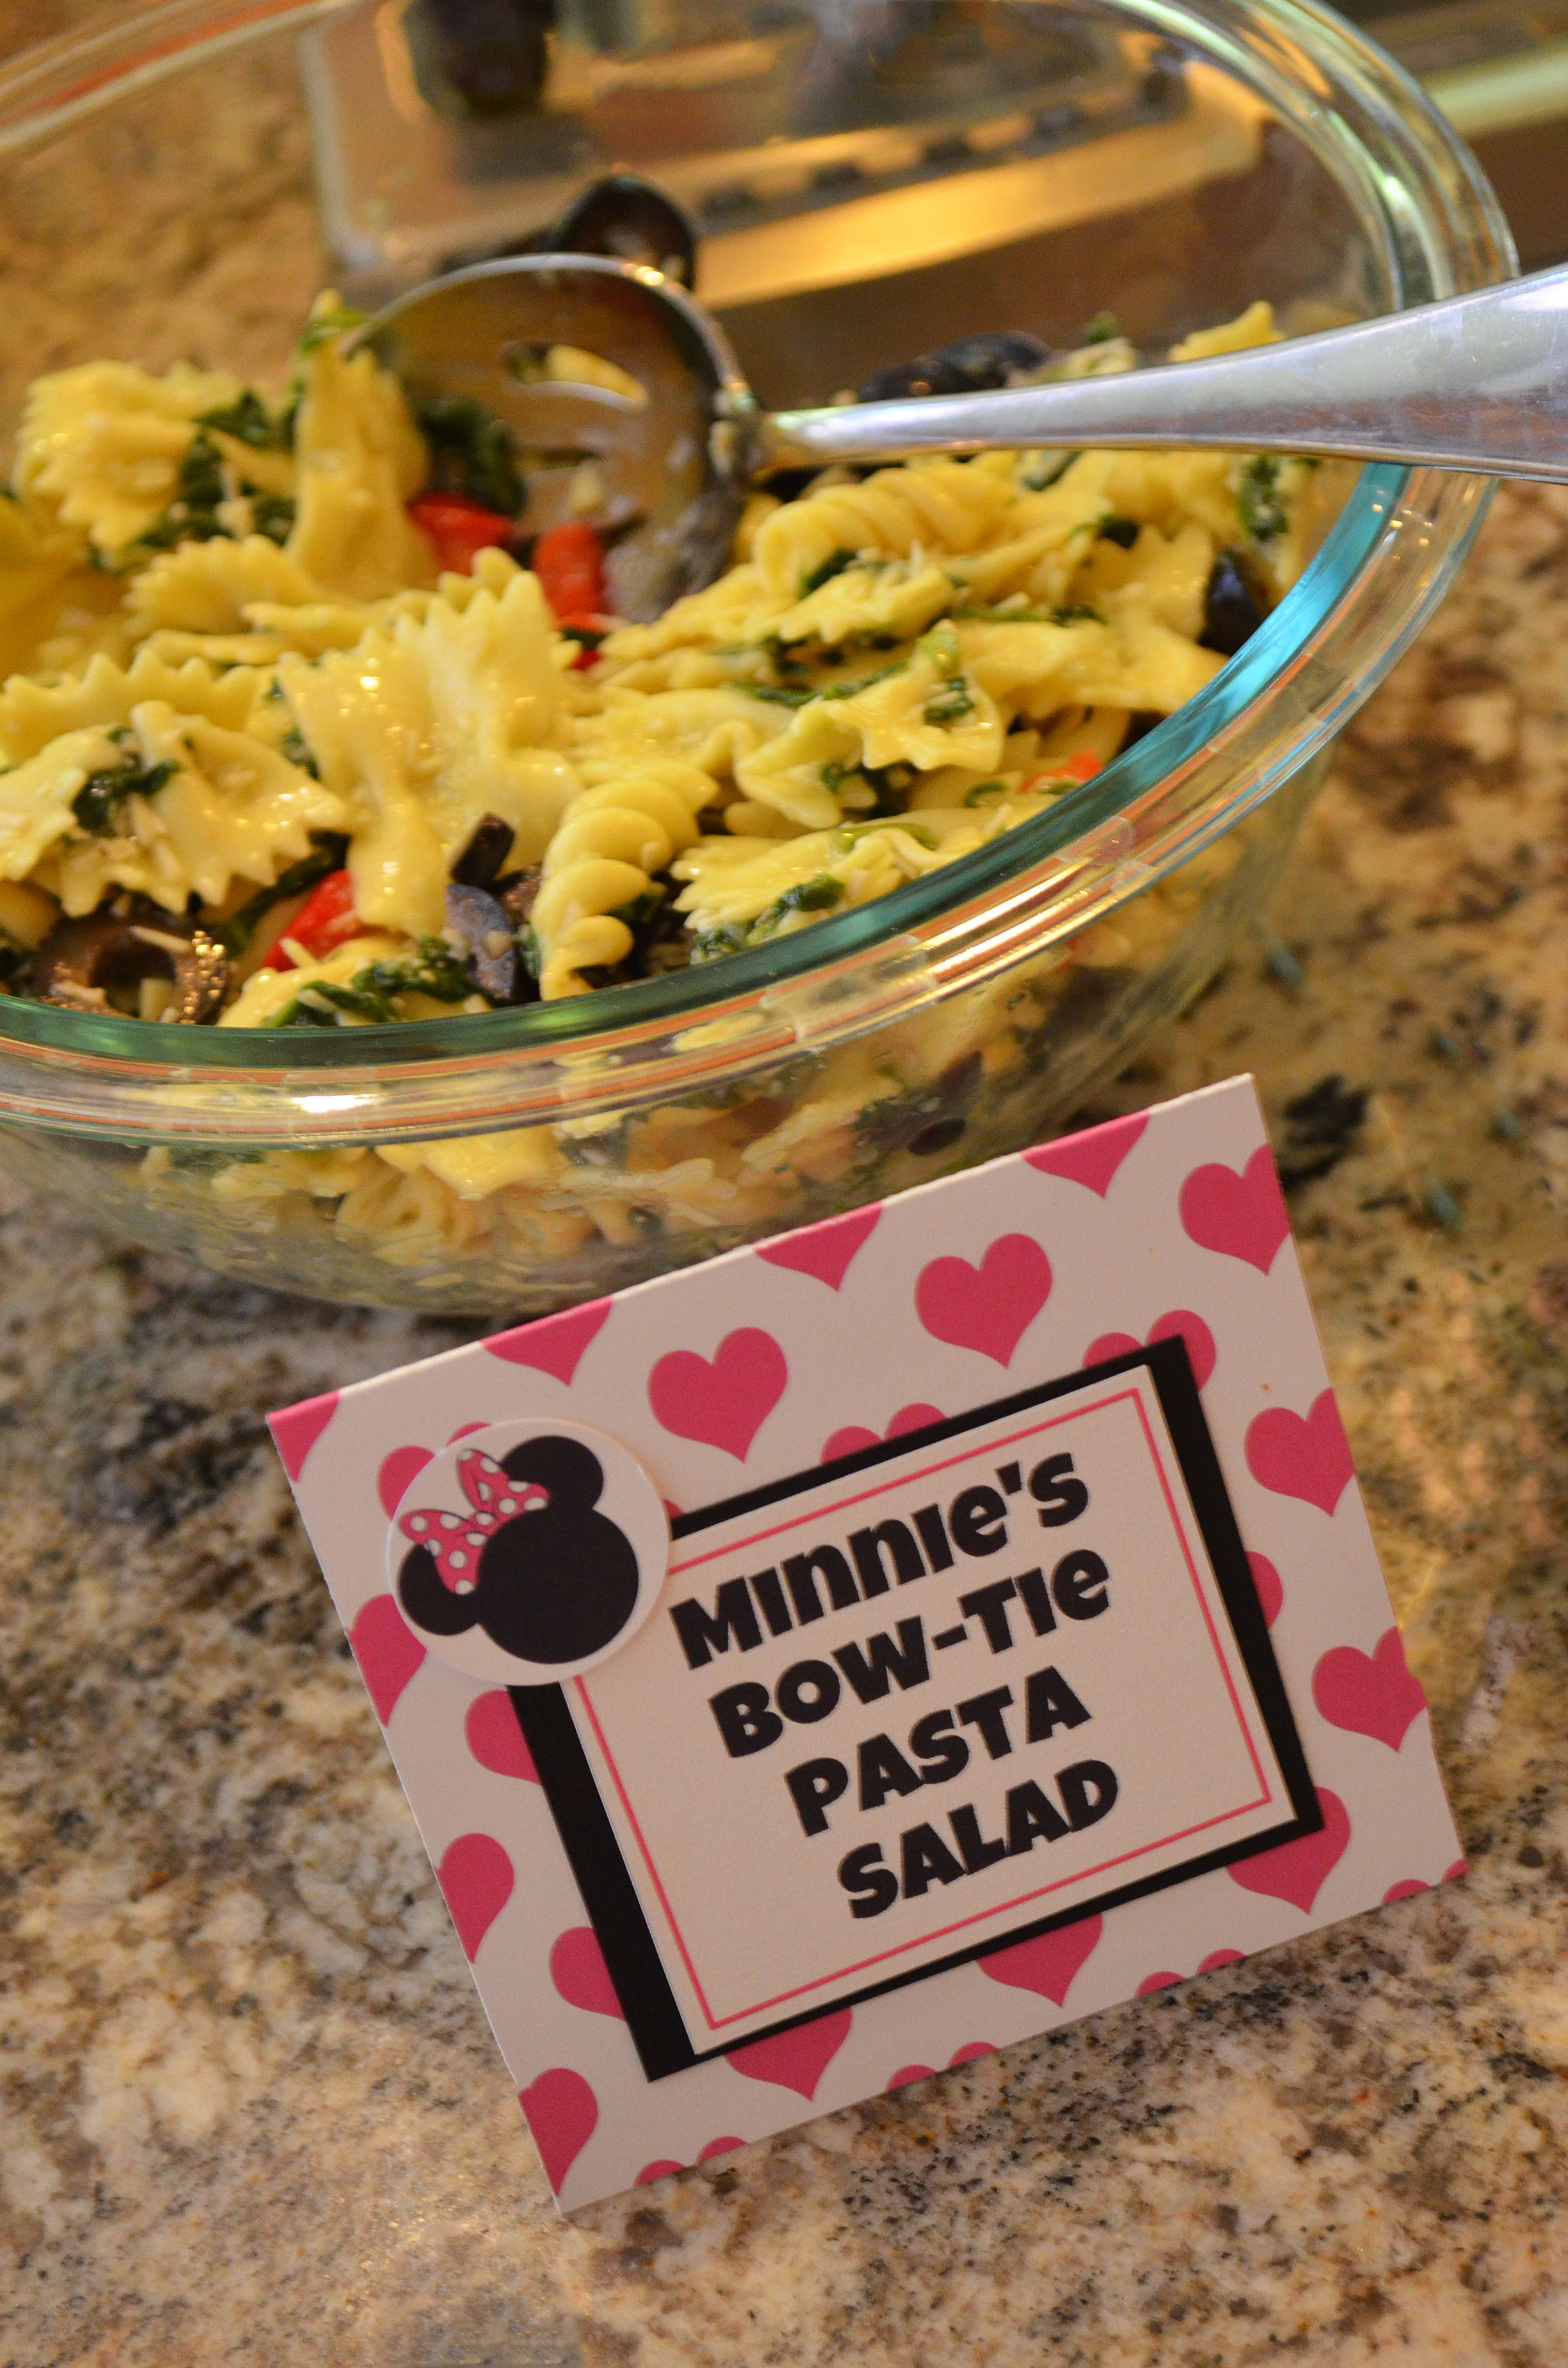 clubhouse pasta salad instructions